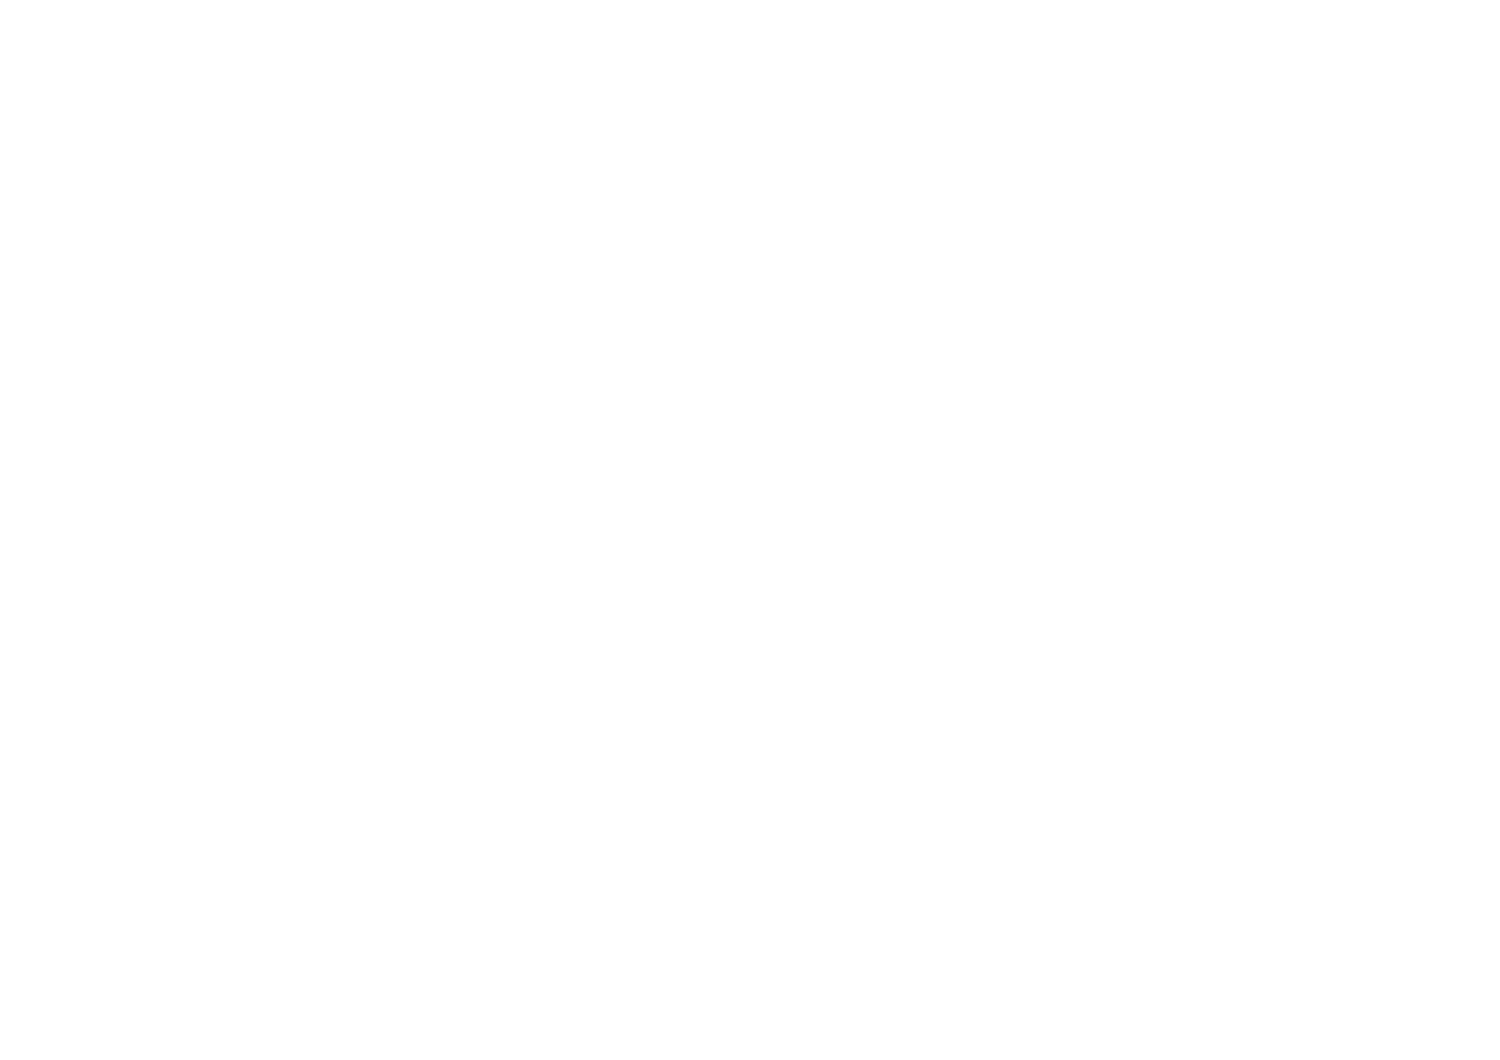 Morgane FRANCOIS • Hypnose • Beauchamp & L'Isle Adam (Val d'Oise 95)